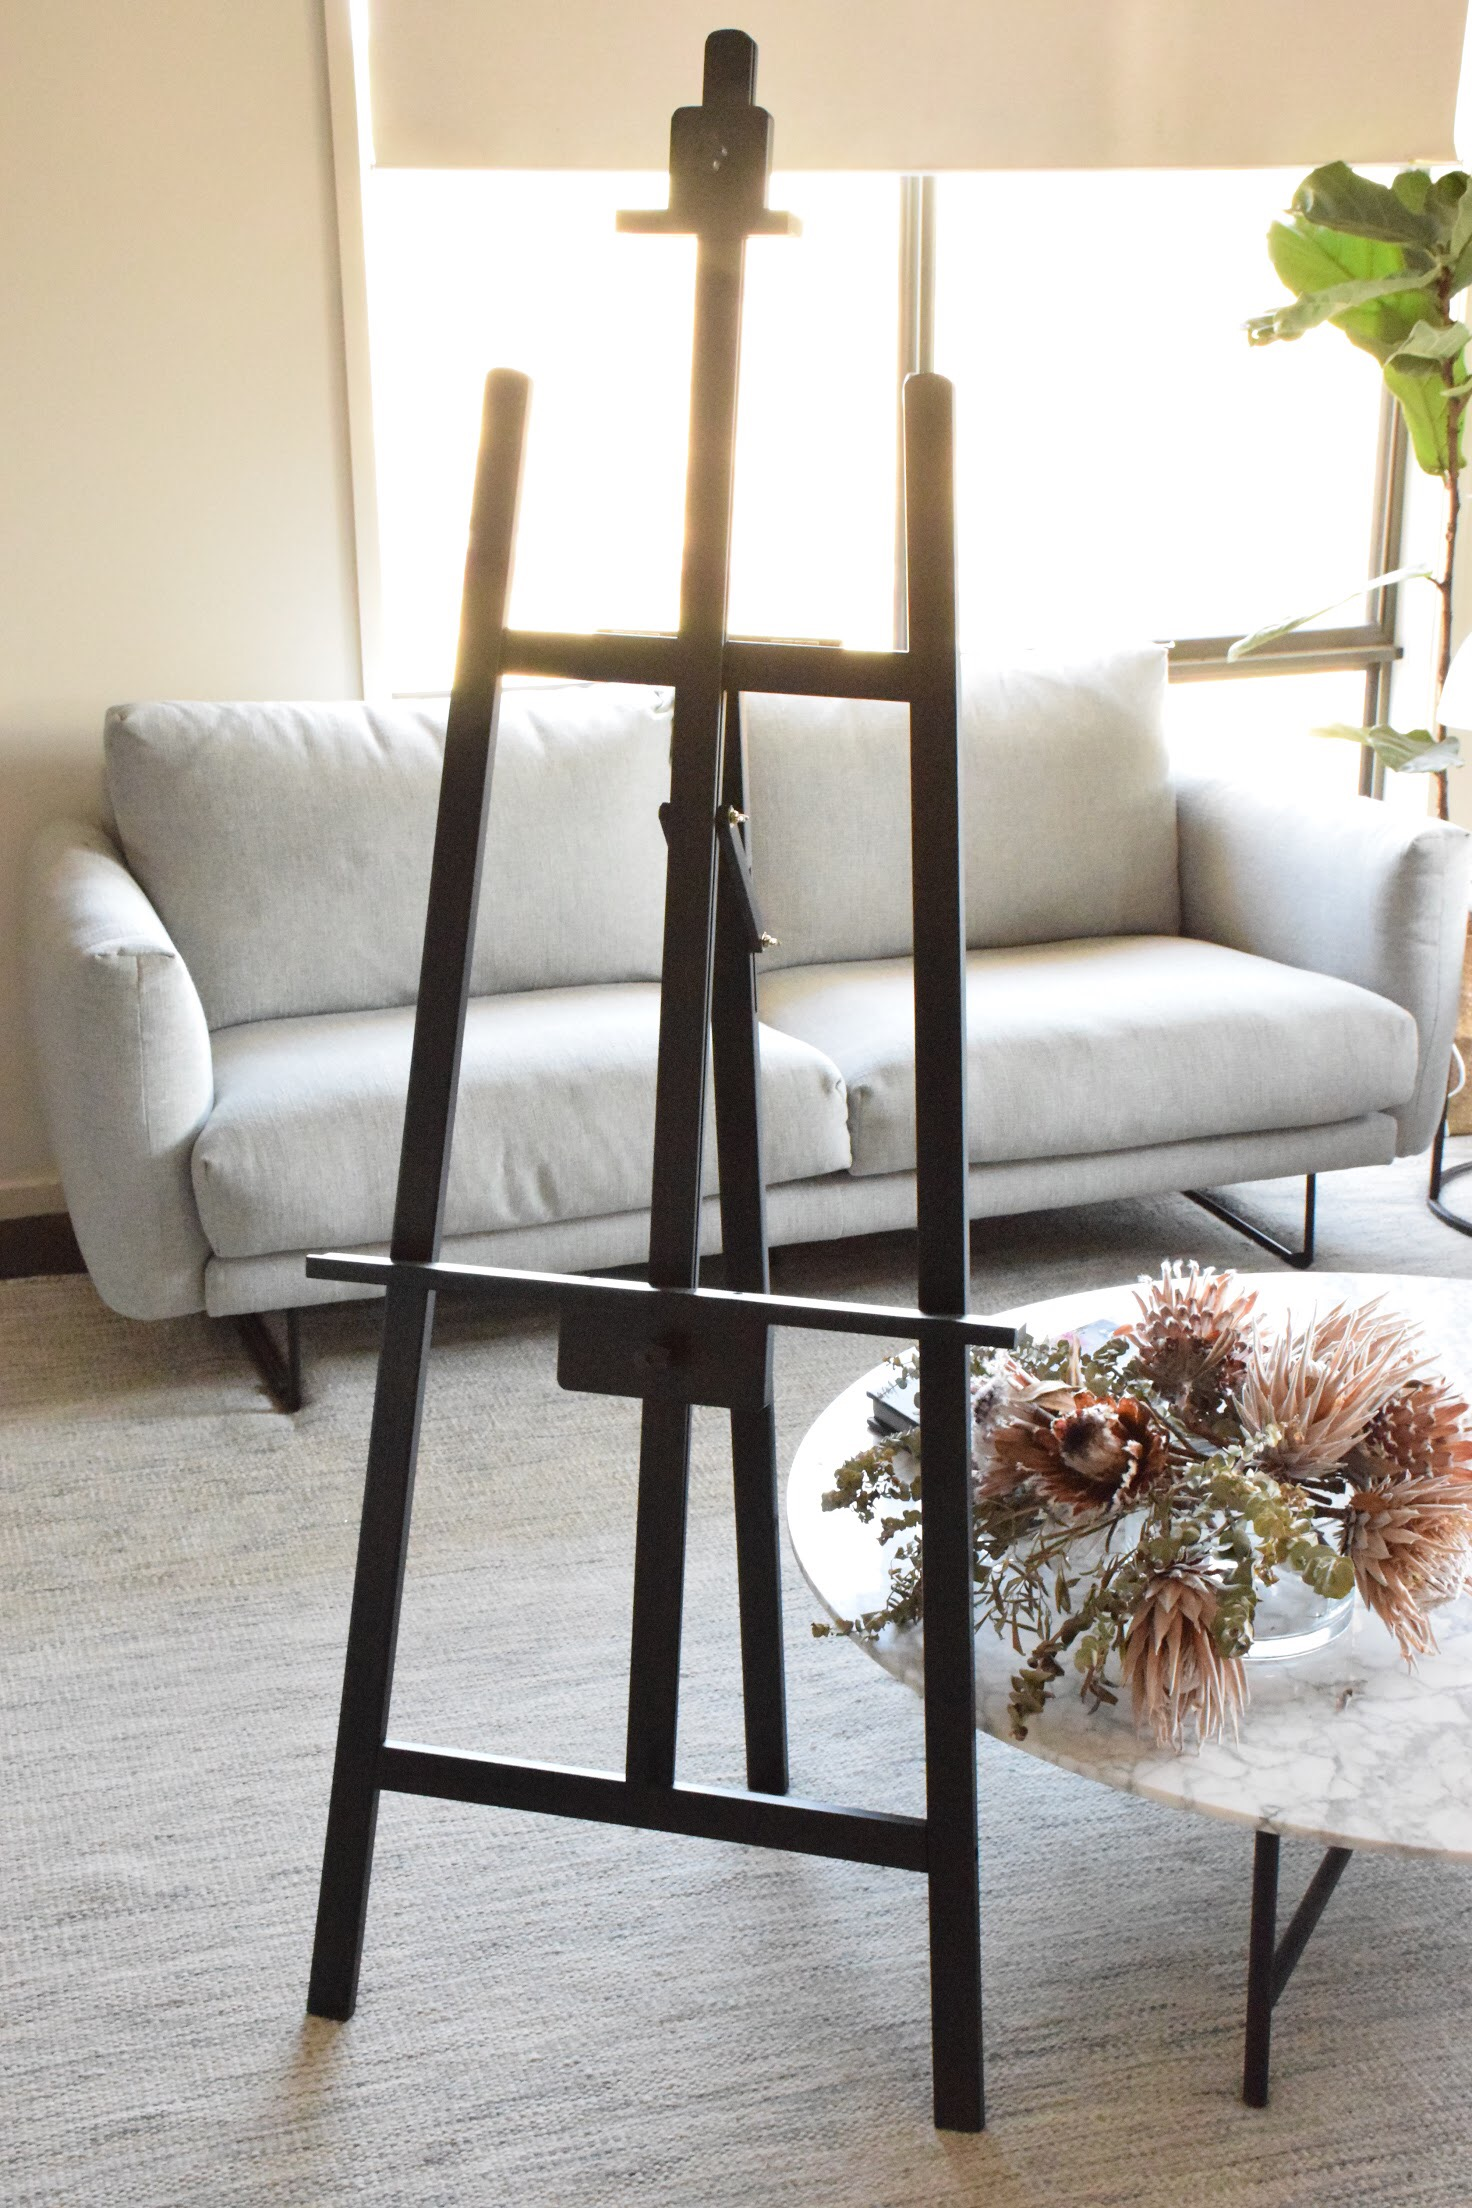 BLACK EASEL. PLEASE CONTACT ME VIA FACEBOOK BUSINESS PAGE OR EMAIL FOR BOOKINGS. (LOCAL WANGARATTA AREA ONLY)